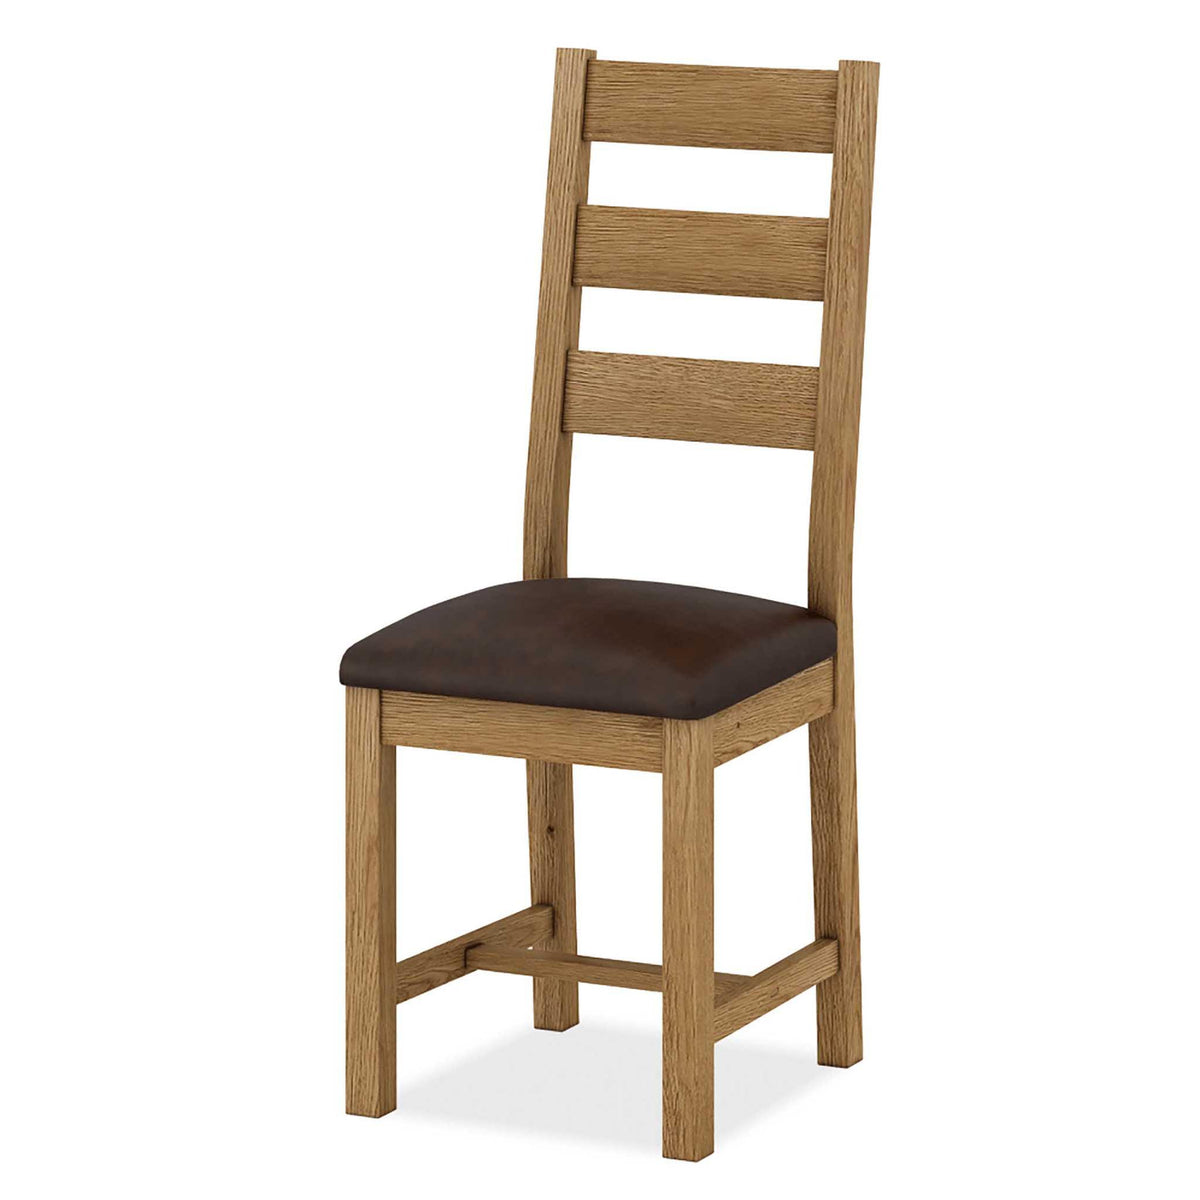 The Abbey Grande Solid Wood Oak Dining Chairs